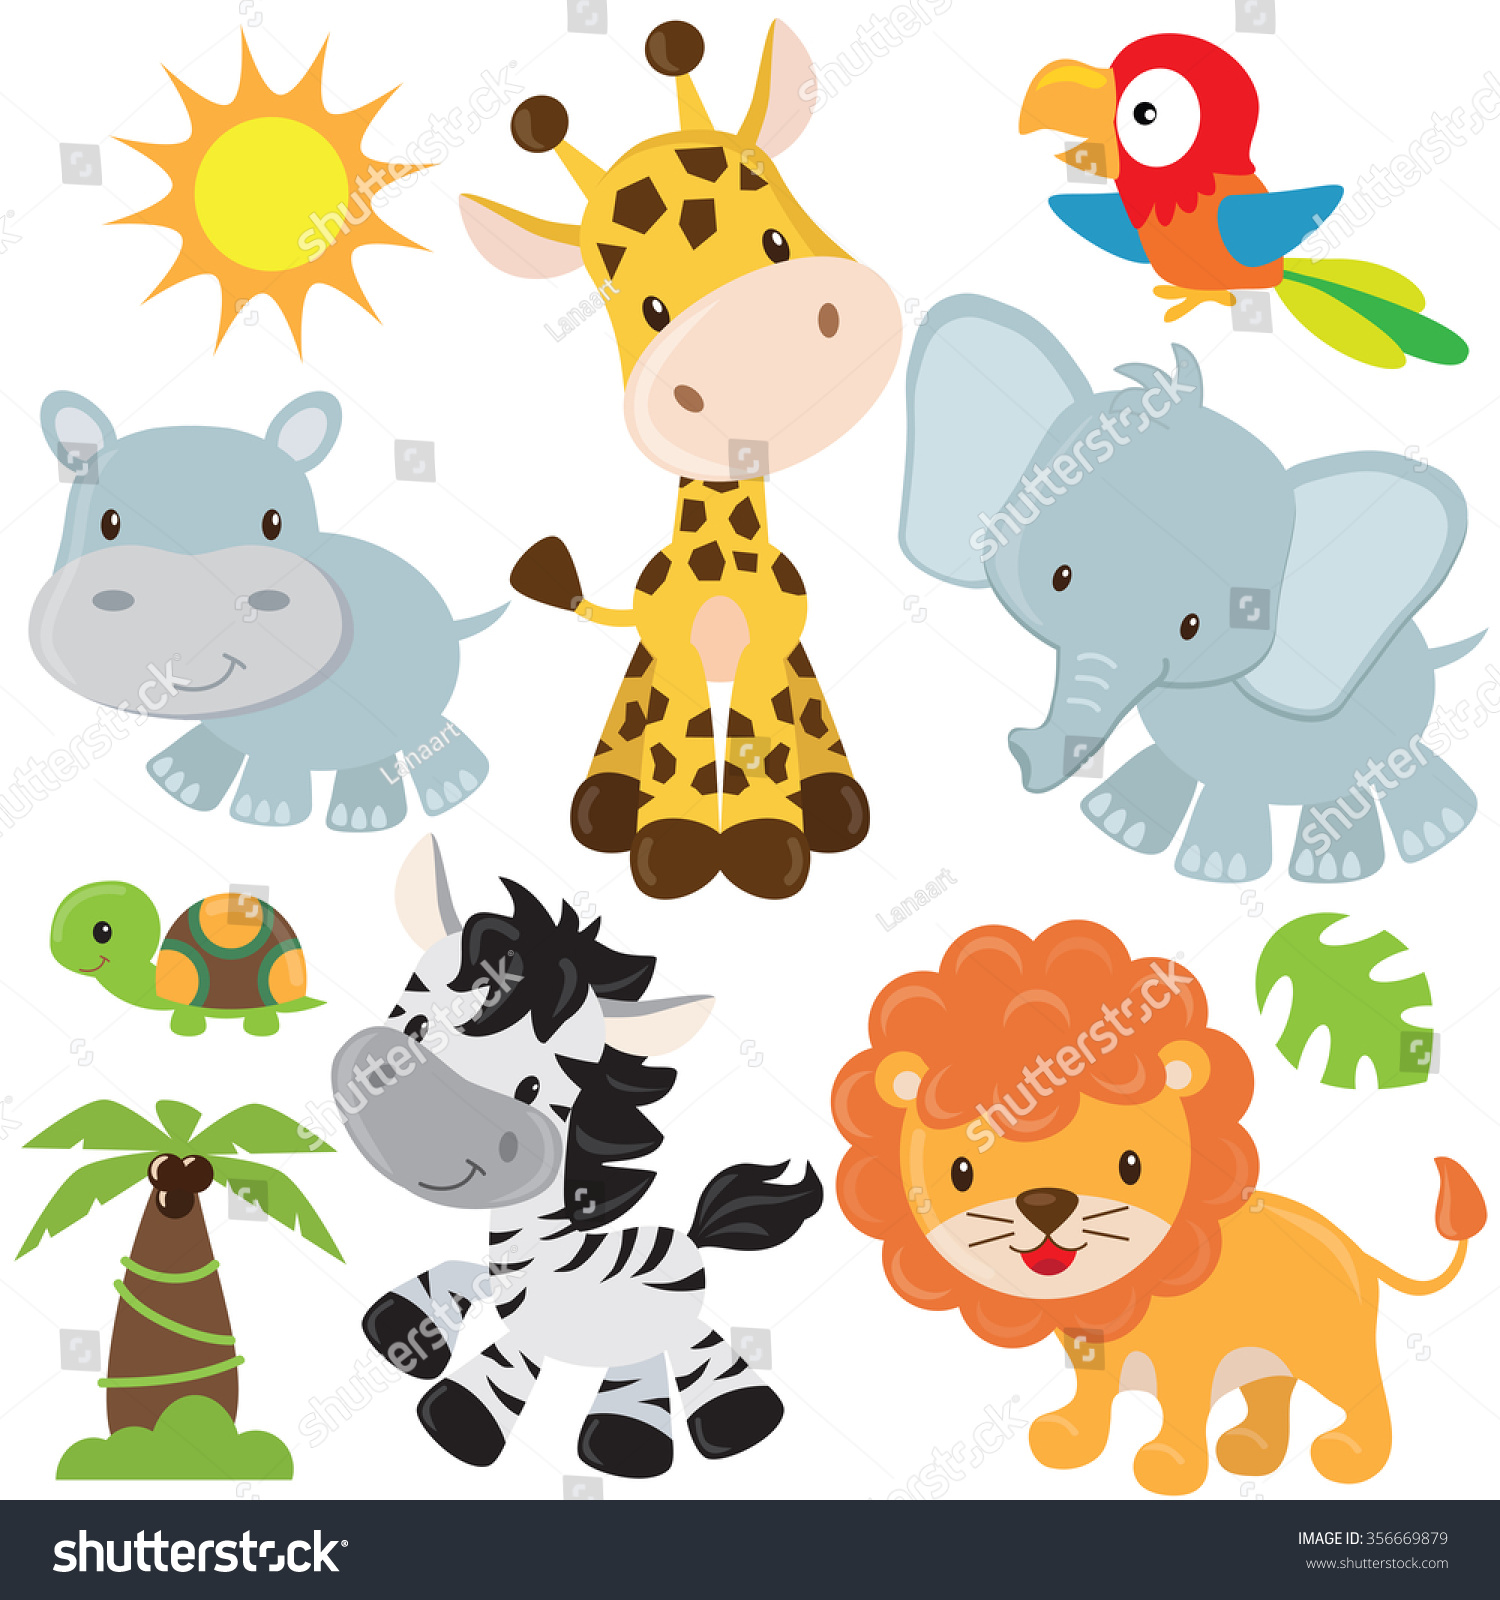 Cute Jungle Animals Vector Illustration Stock Vector